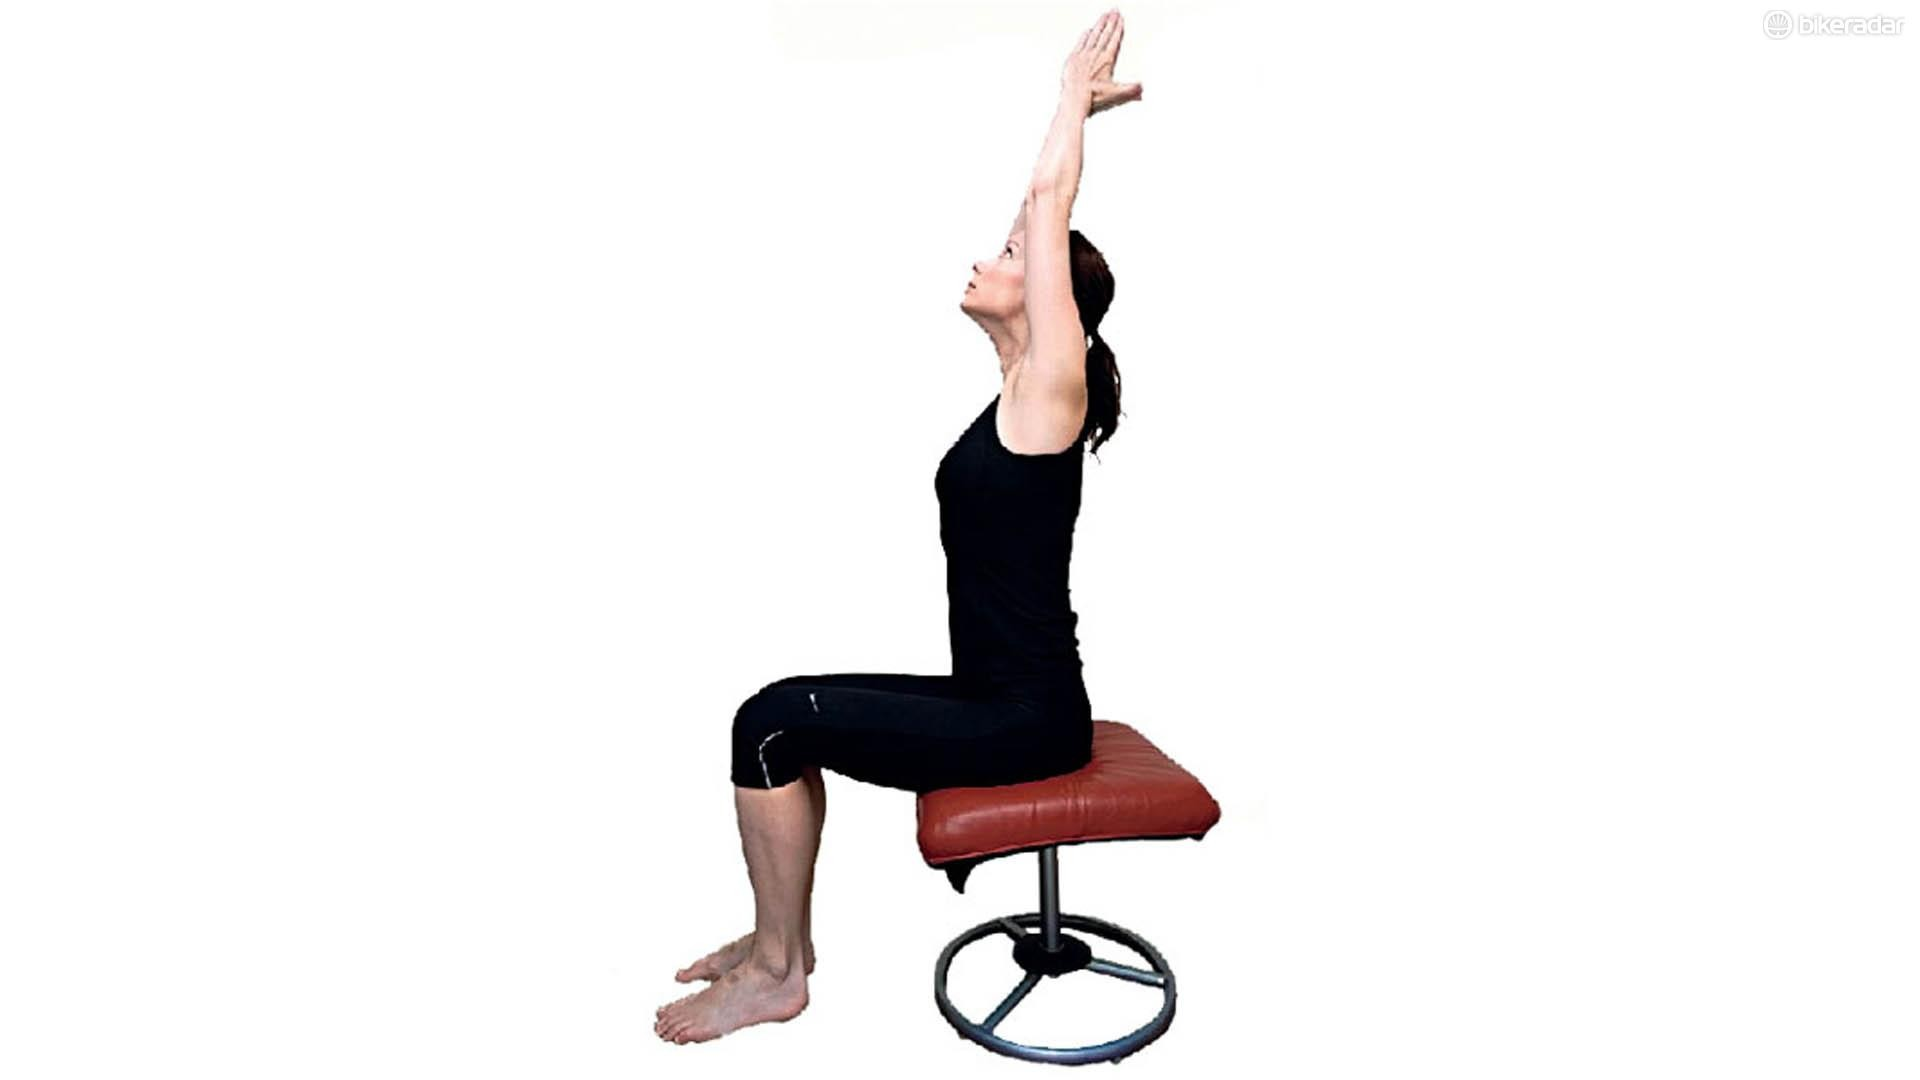 Another office chair-based stretch that will release tension in muscles throughout the back